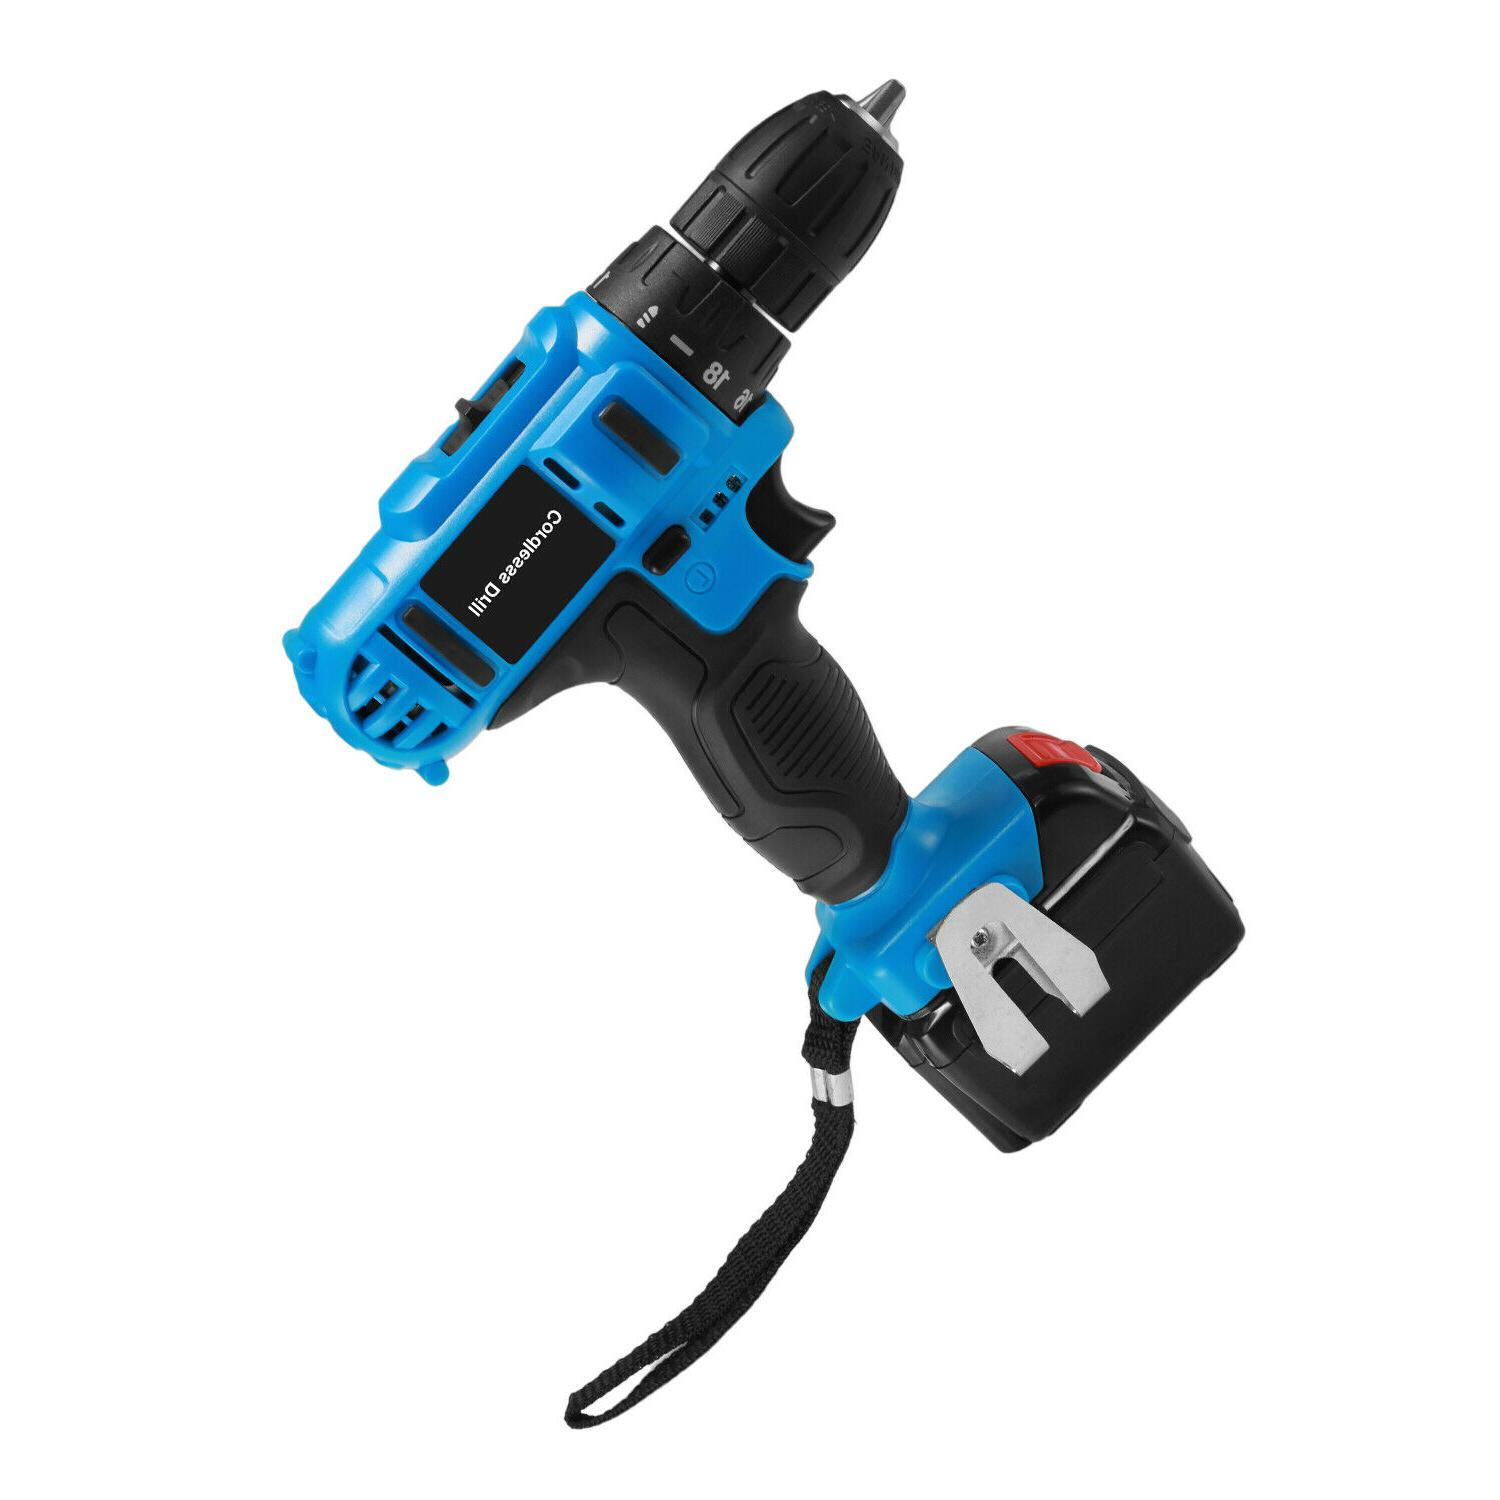 21V Drill Kit Driver Charger battery